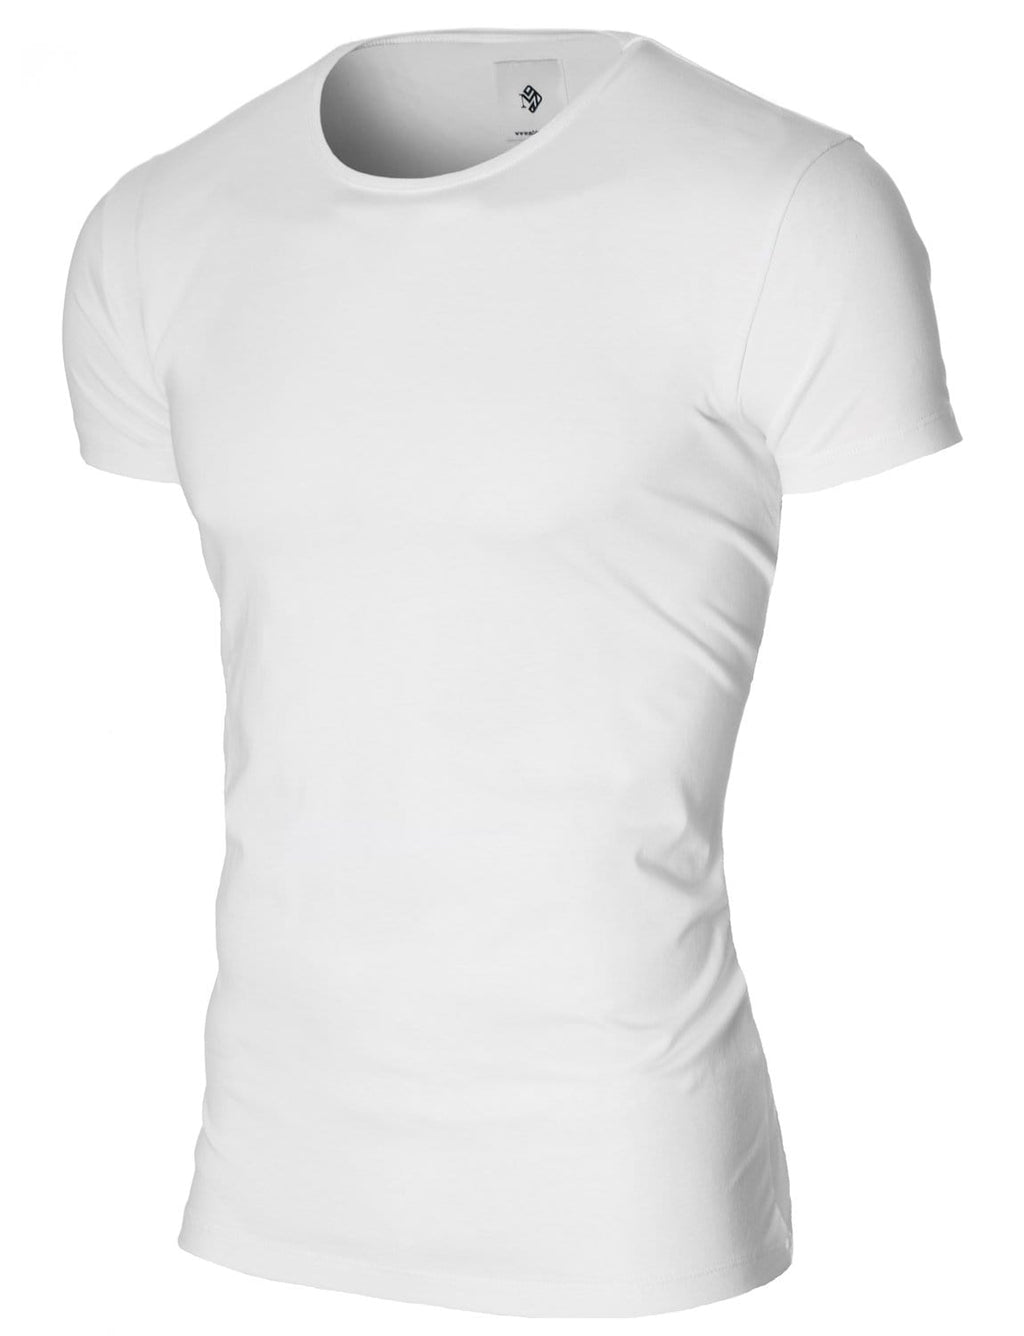 Mens basic crew neck t-shirt white (MOD1001RN)